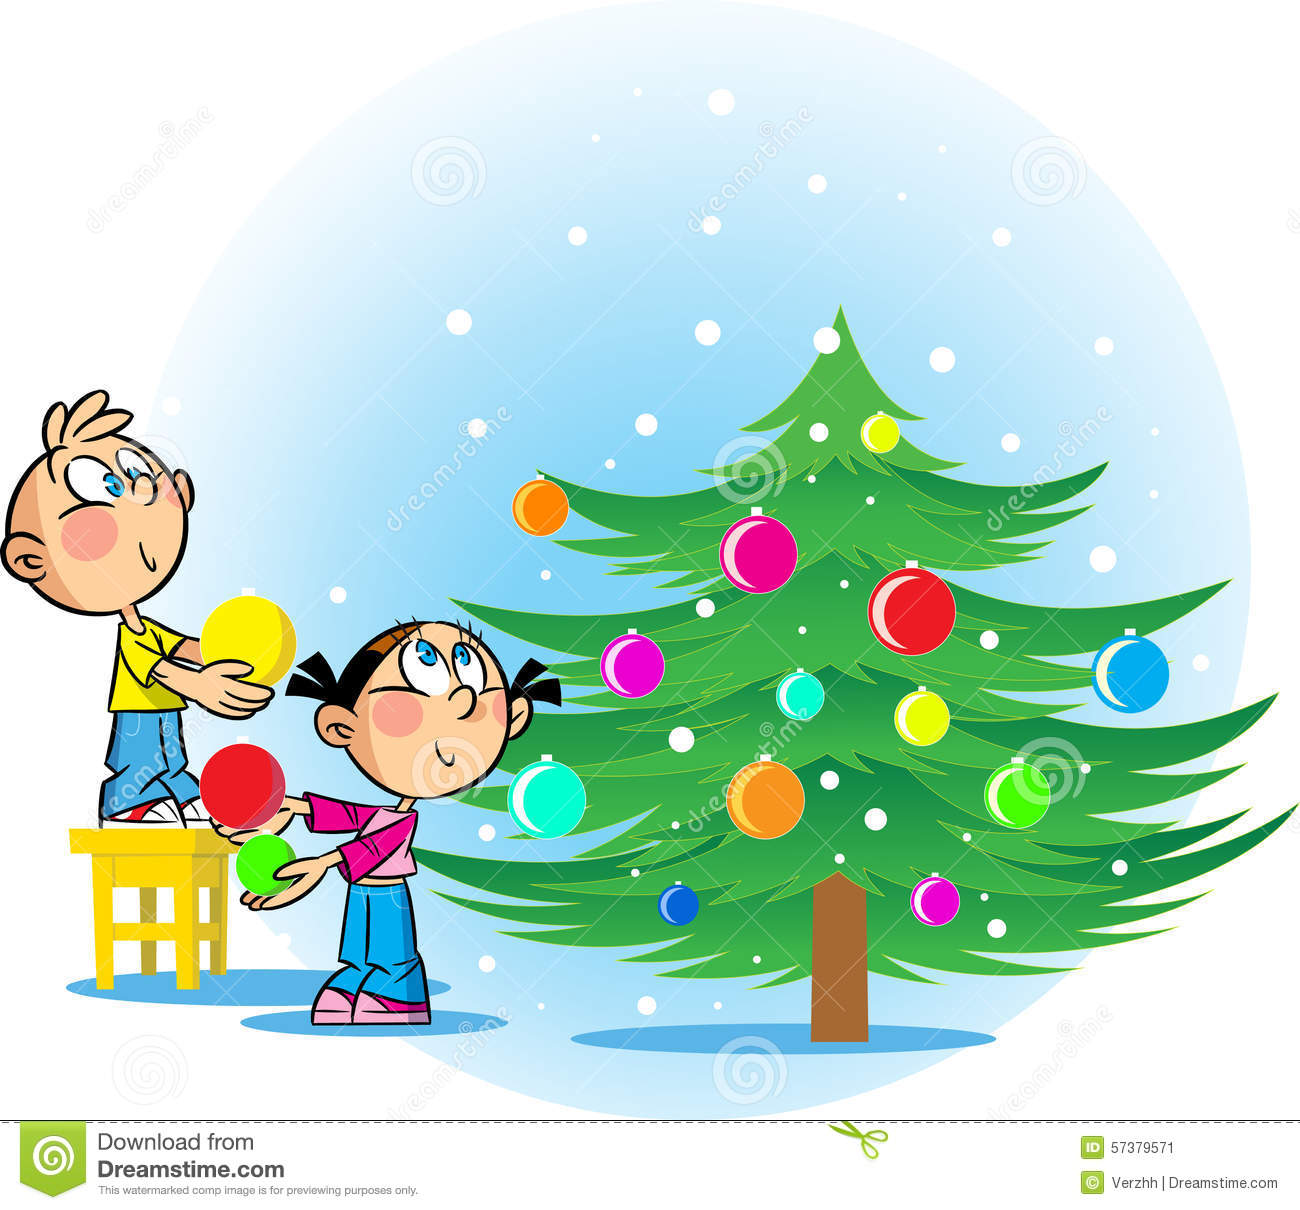 Kids Decorating Christmas Tree: Children Decorate The Christmas Tree Stock Vector